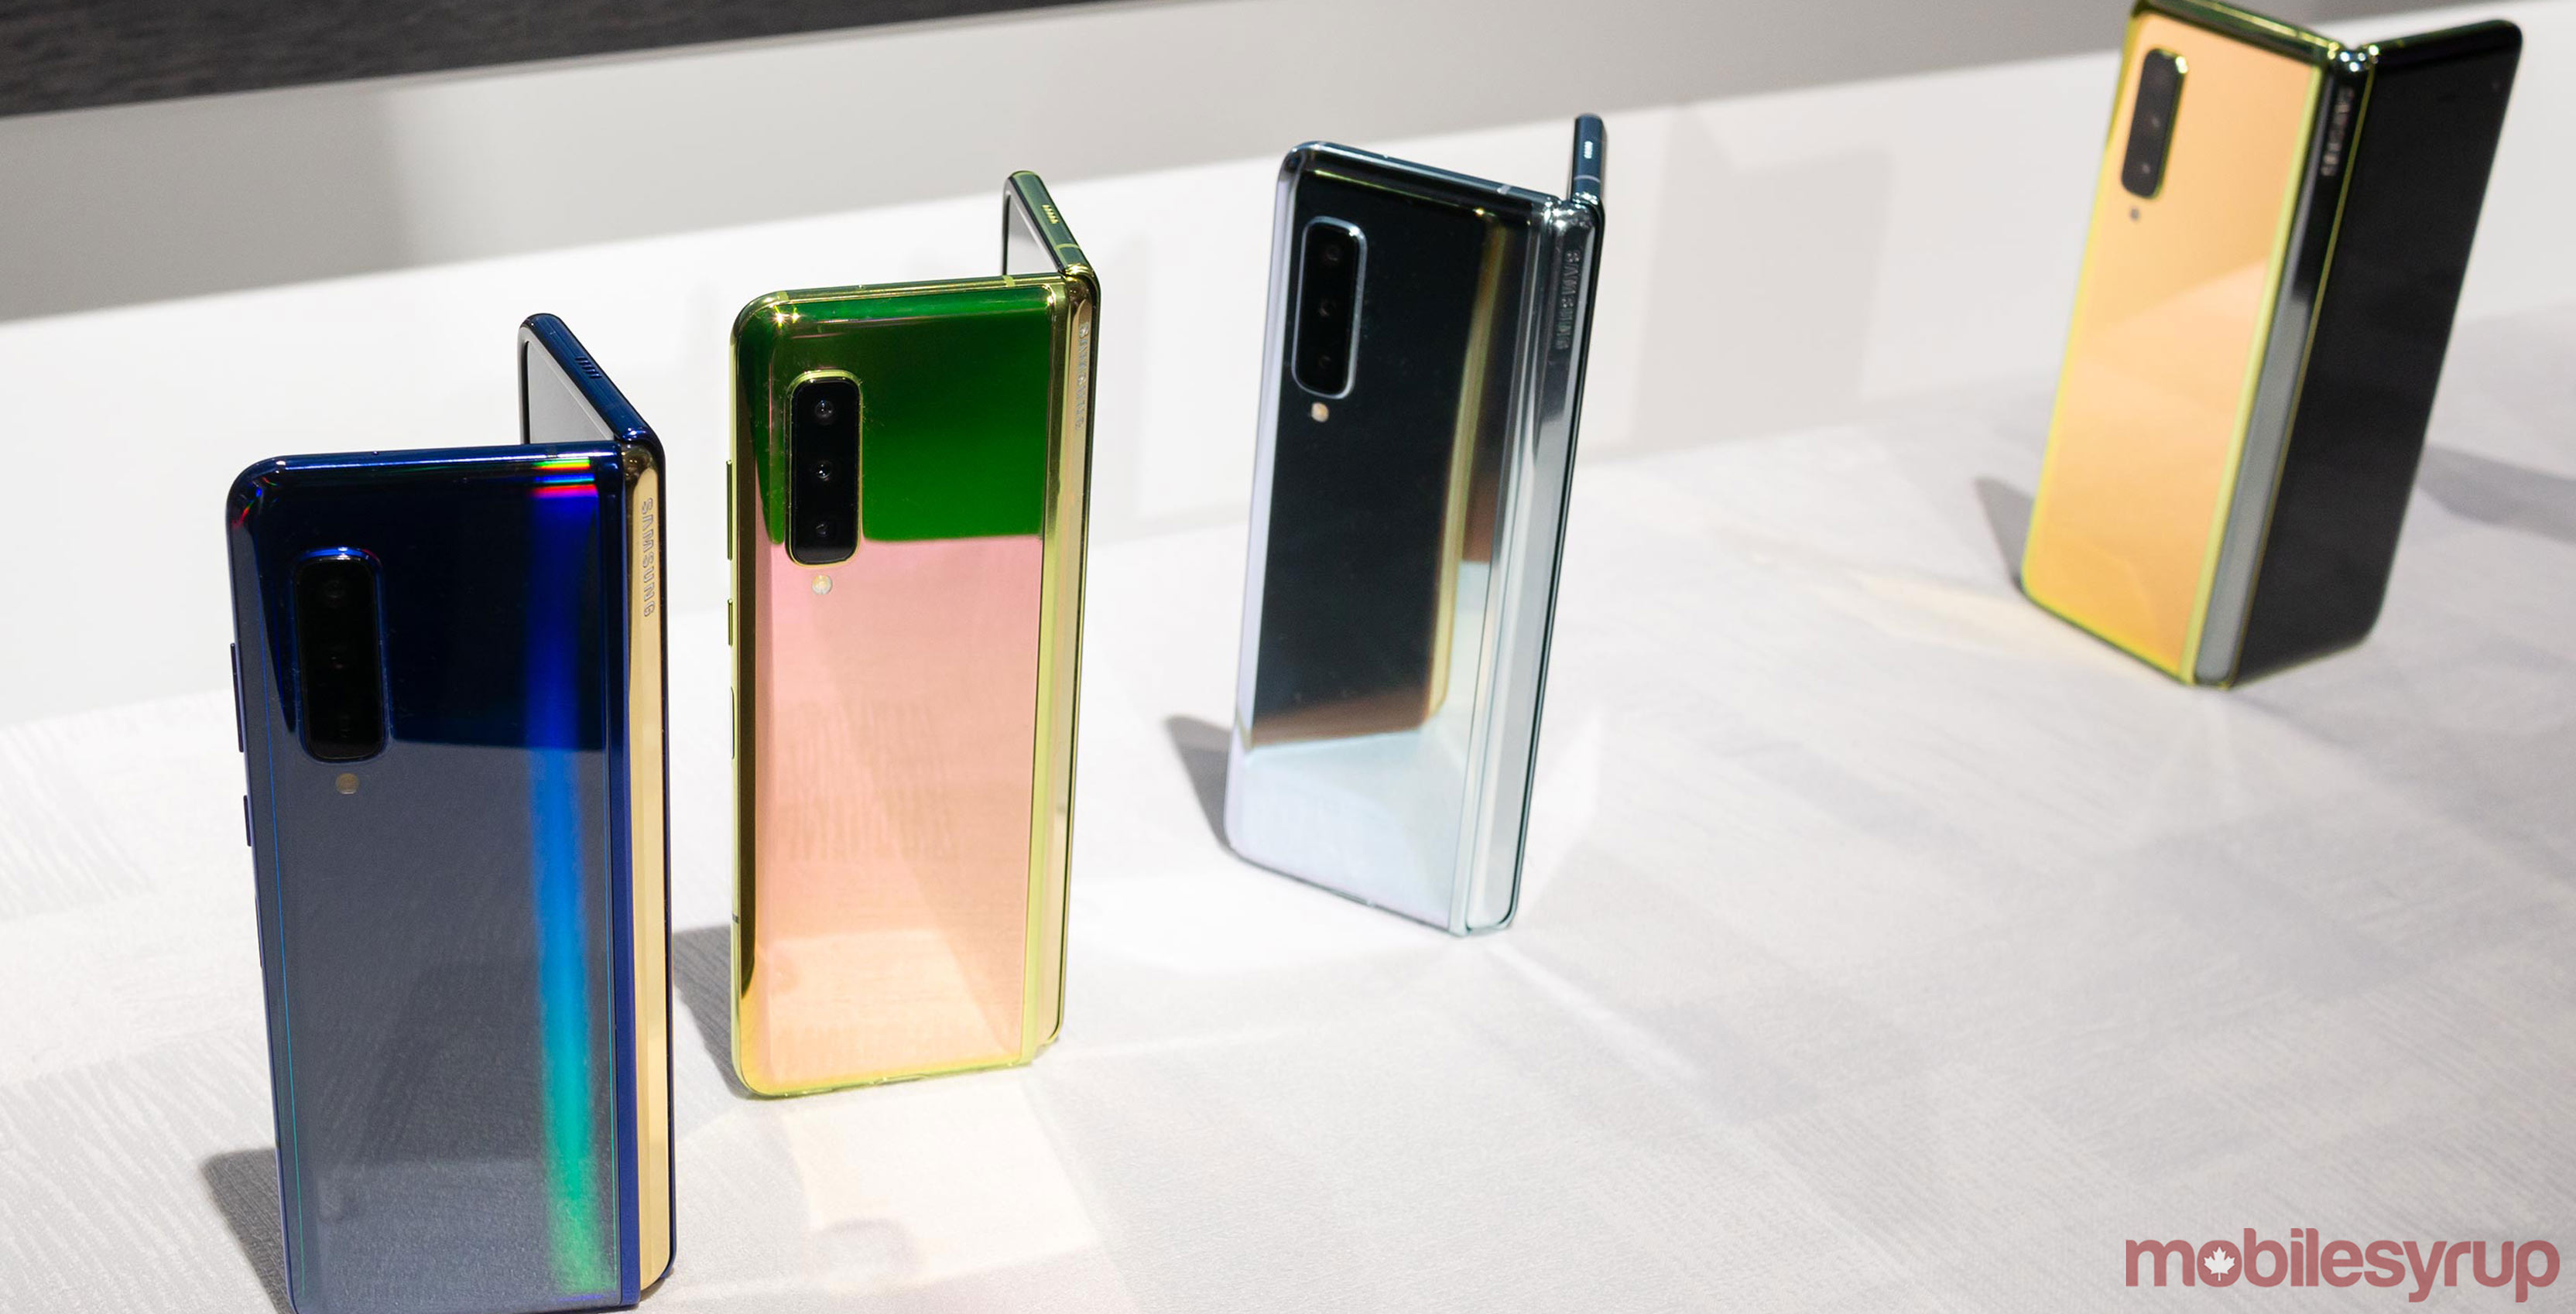 Samsung's Galaxy Fold is finally available in Canada